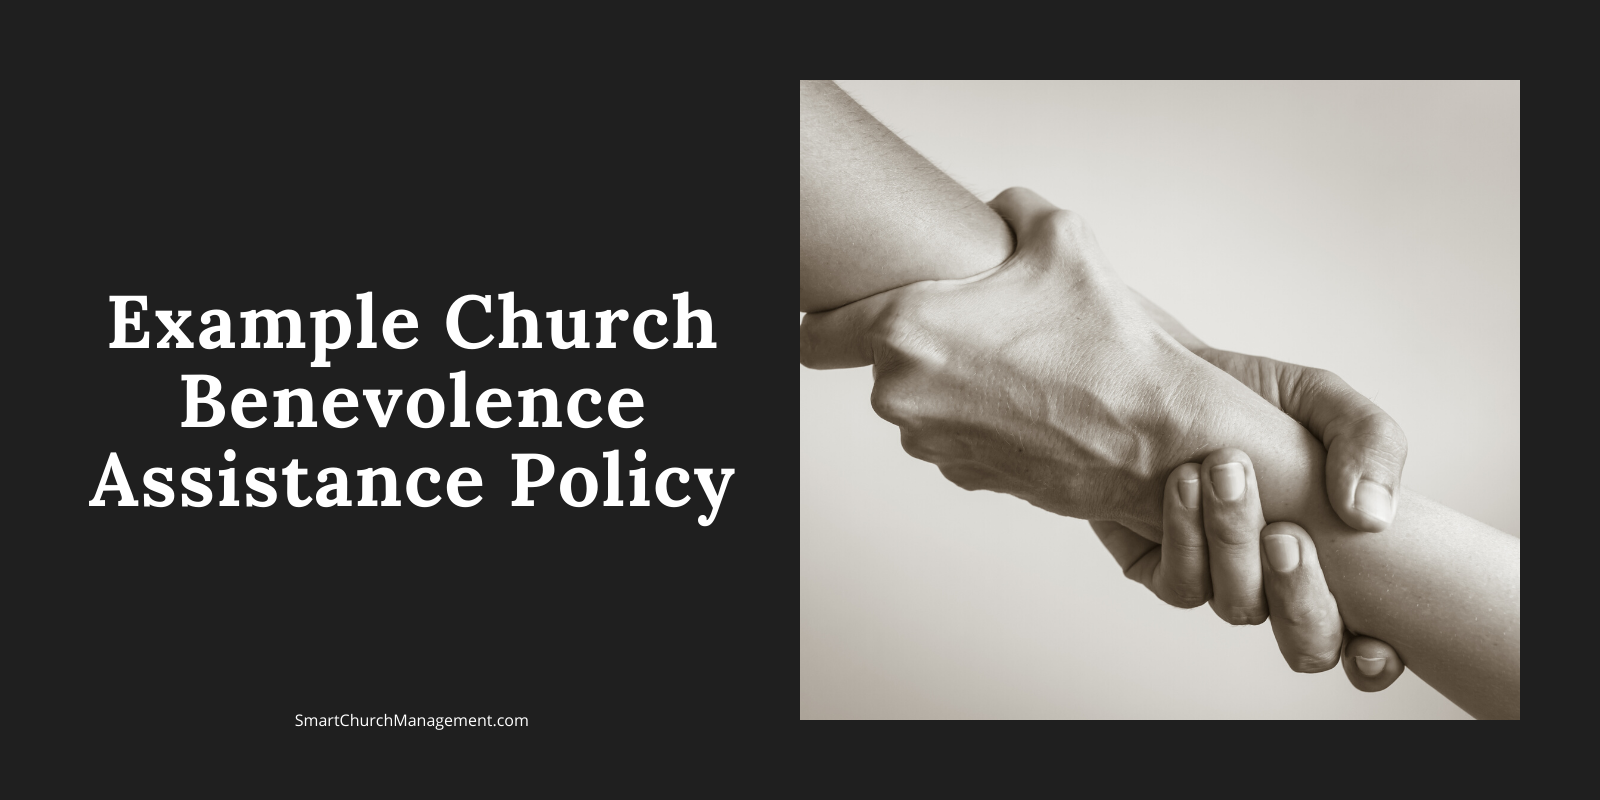 Example Benevolence Assistance Policy